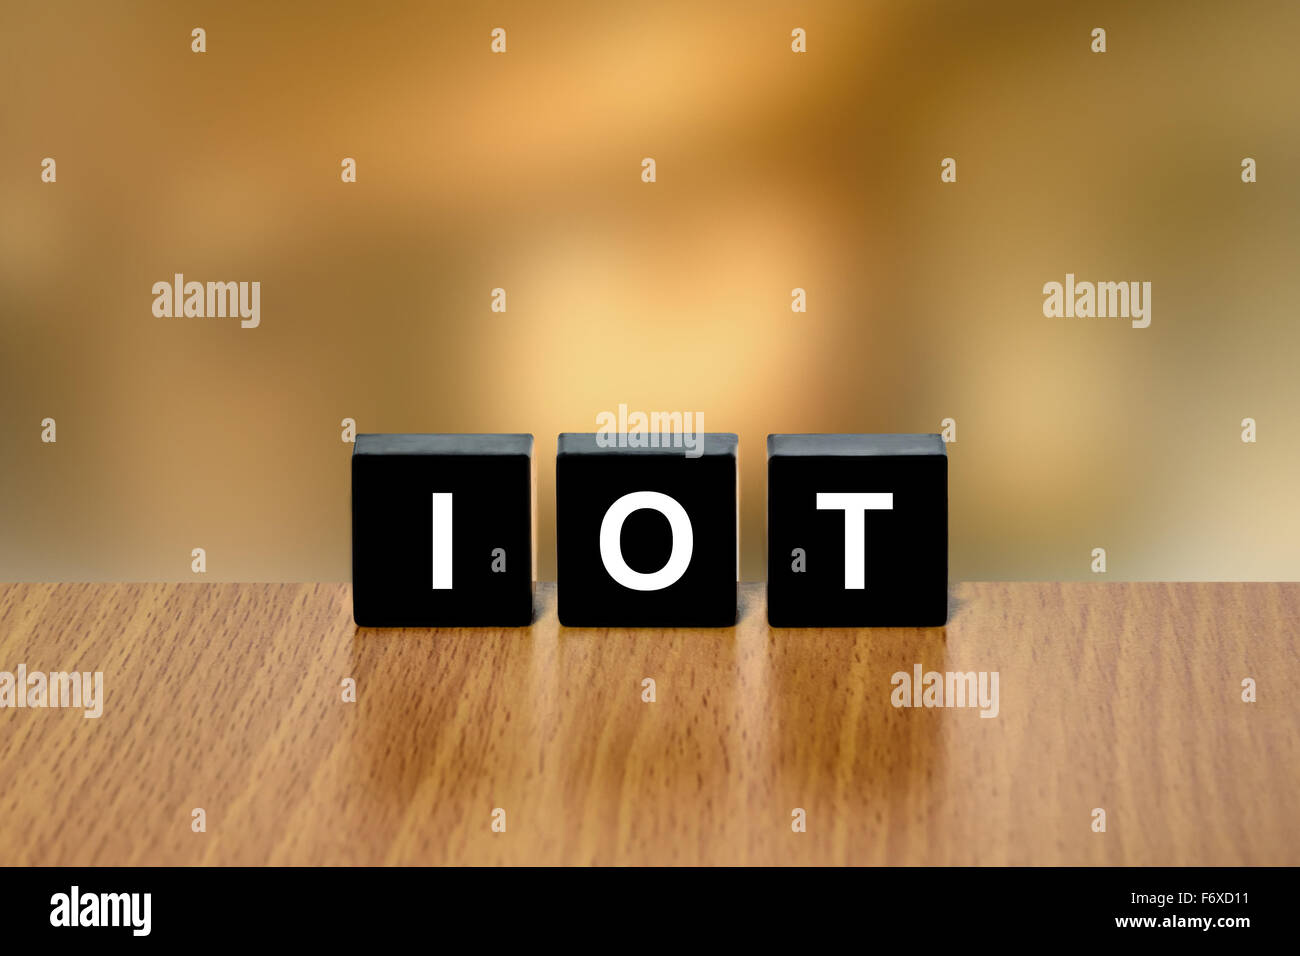 IOT or Internet of Things on black block with blurred background - Stock Image